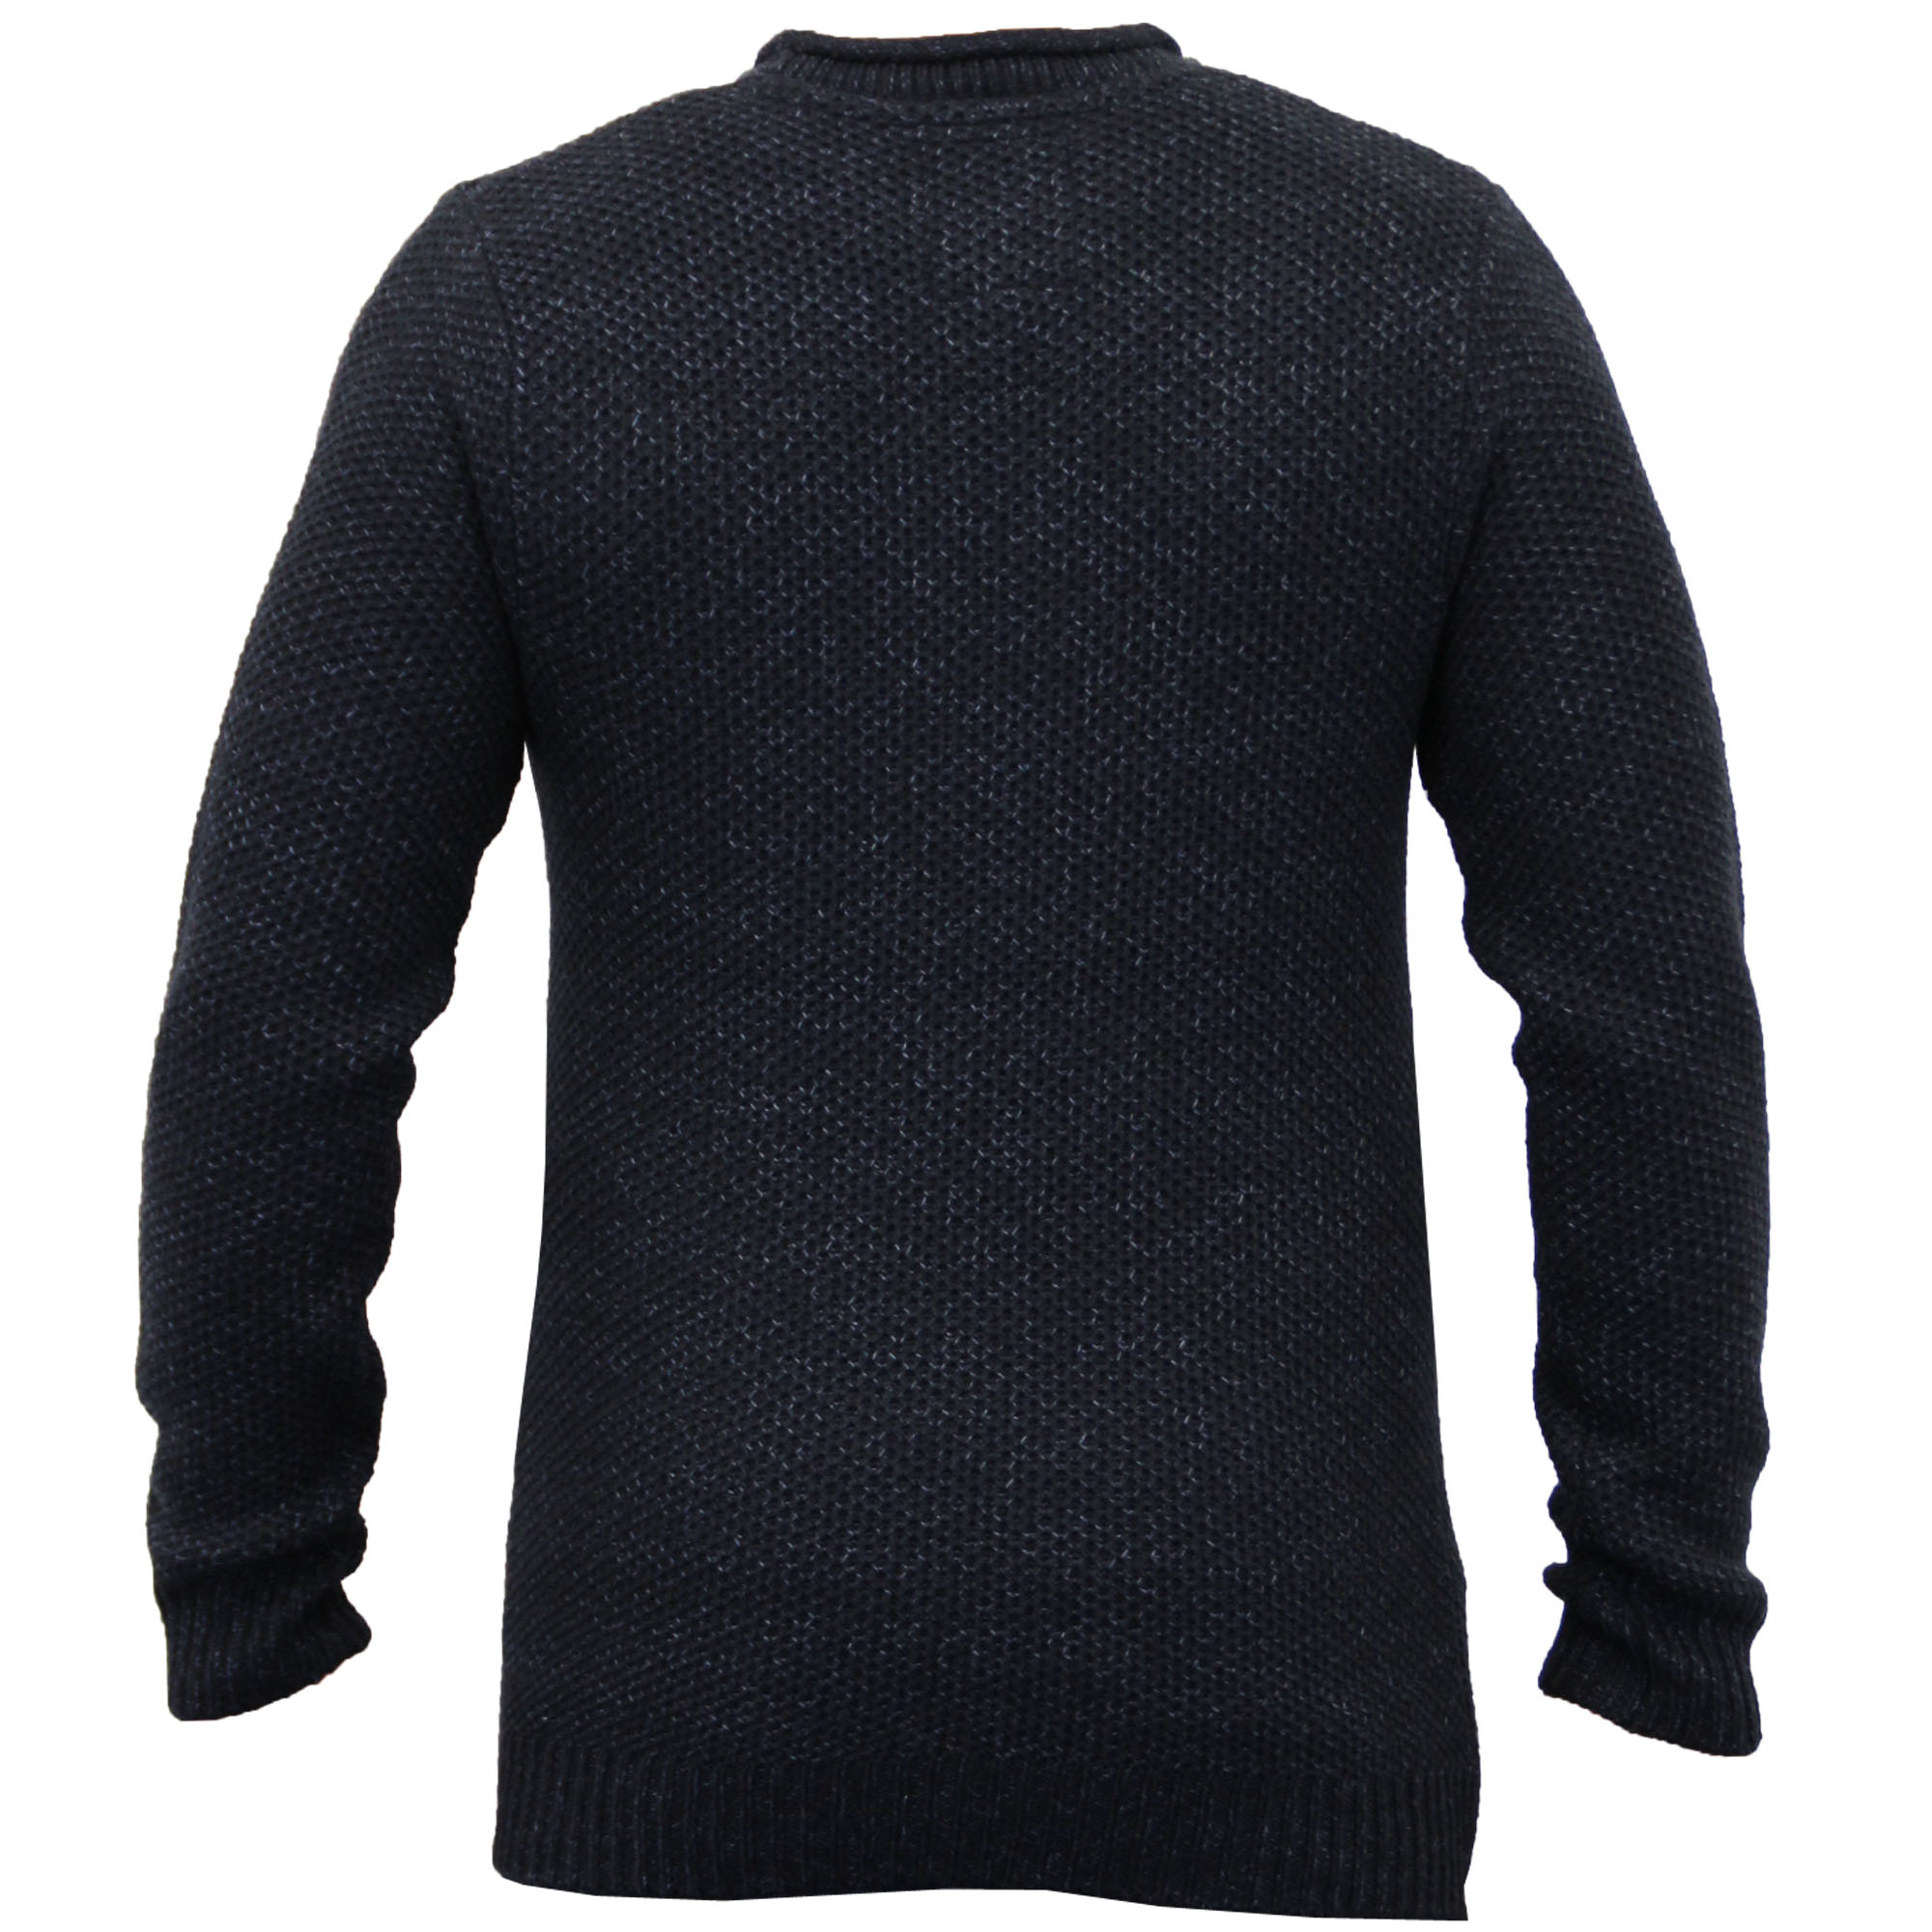 Pullover Jungs Pullover Jungs Sport Startseite Shopping